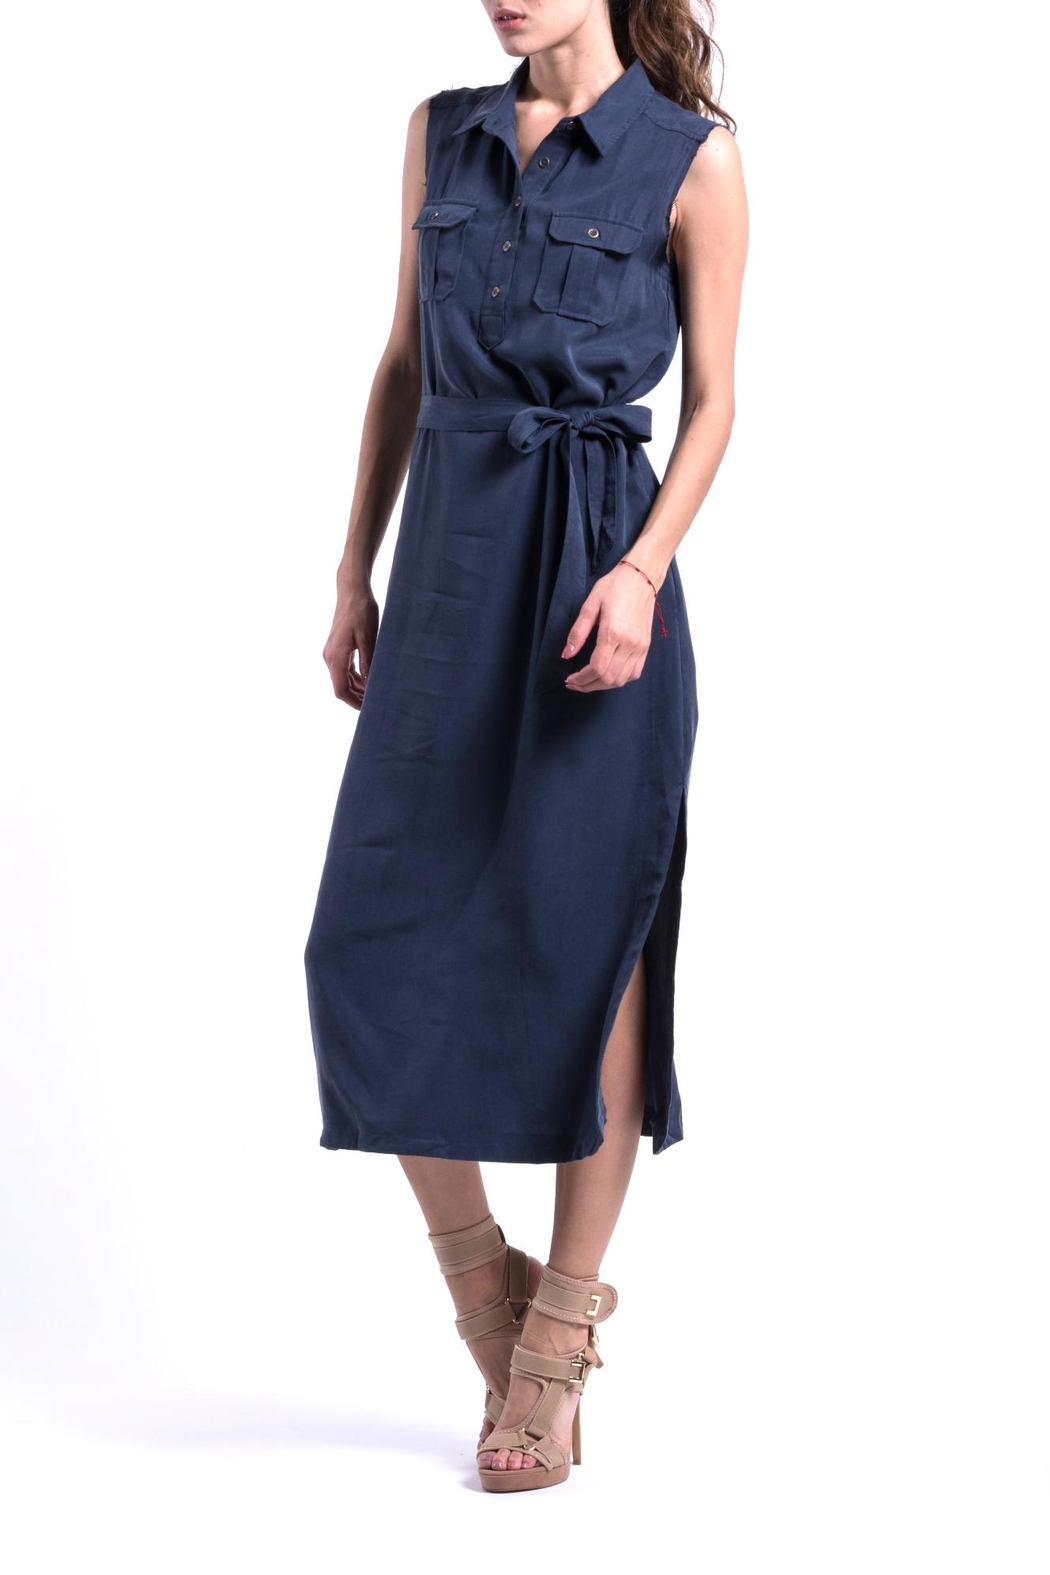 ANA PEREZ Blue Eco Dress - Main Image